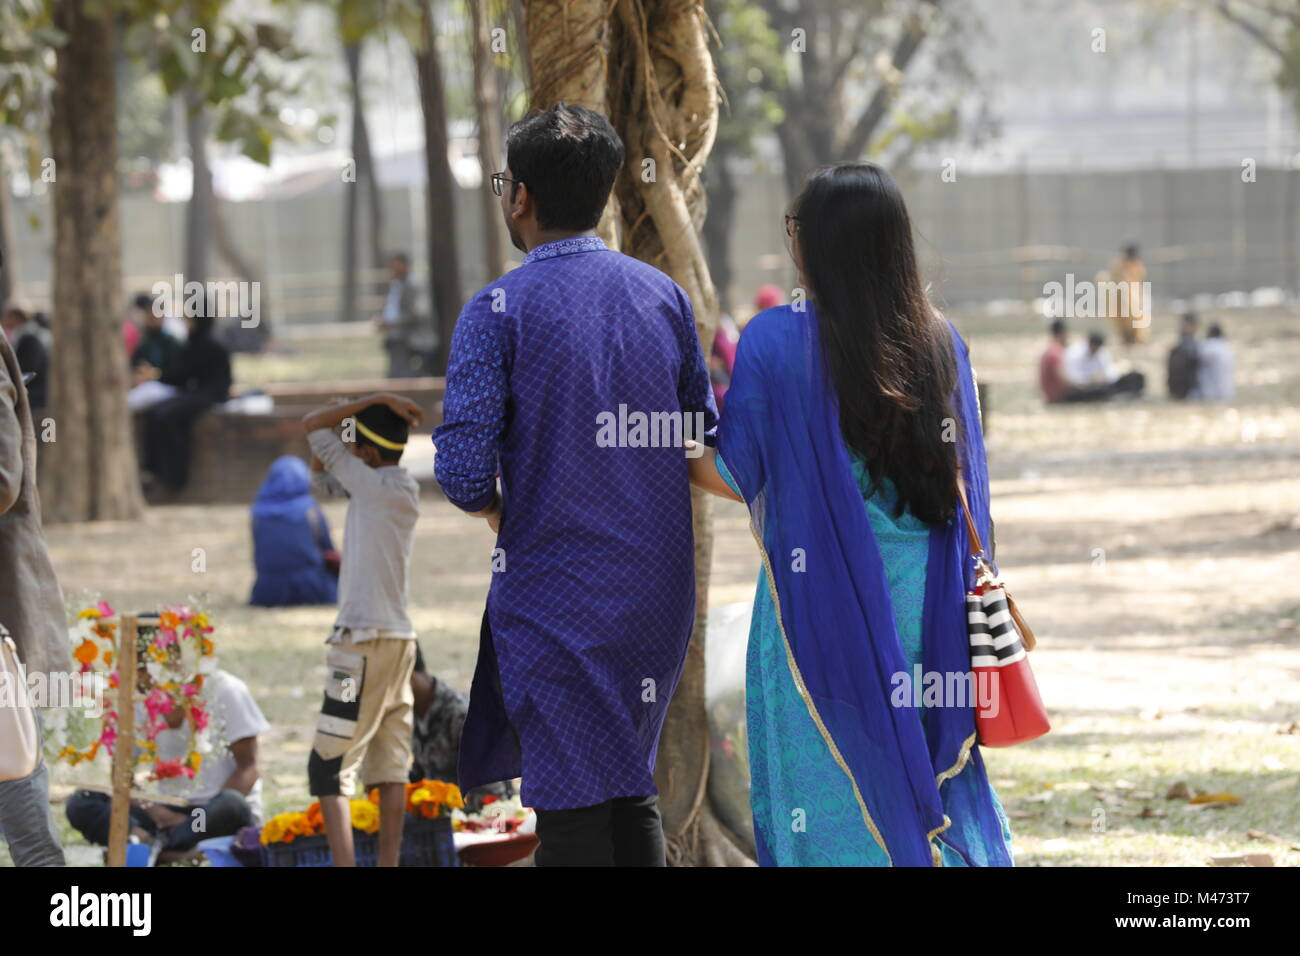 Dhaka bangladesh february 14 2018 bangladeshi couple in a park to celebrate valentines day in dhaka on february 14 2018 valentines day also called